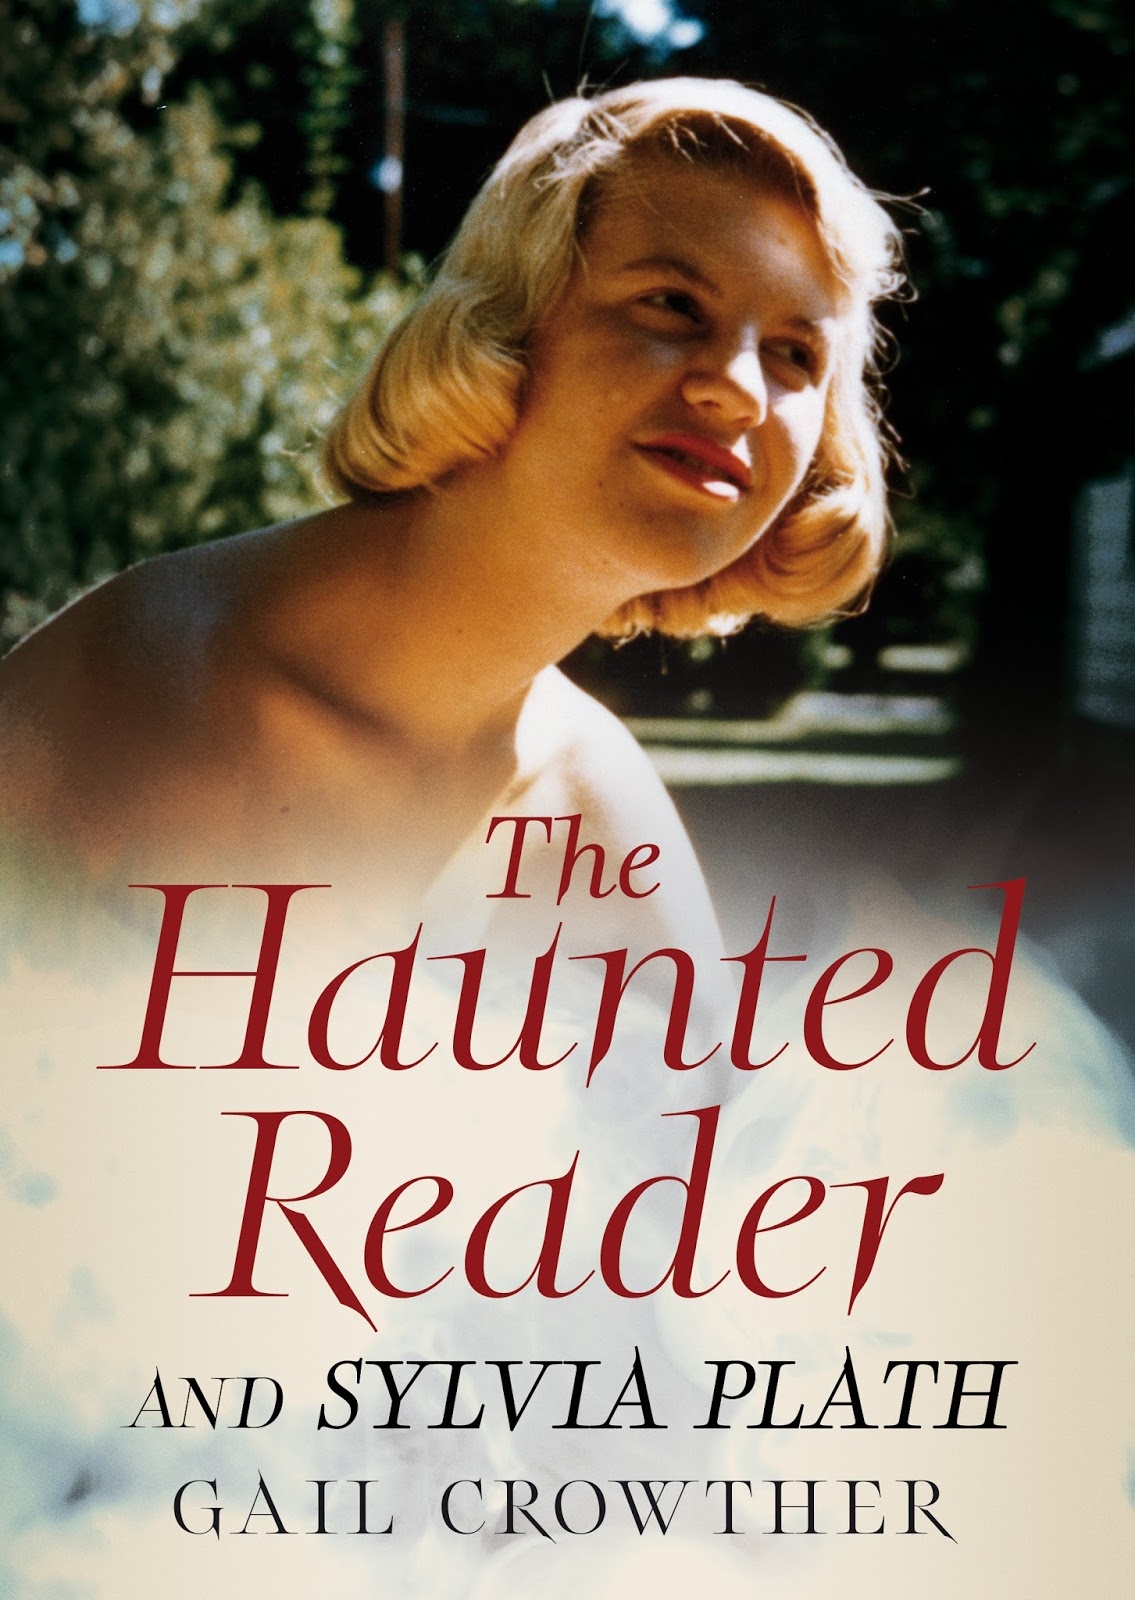 Unseen Sylvia Plath short story to be published in January